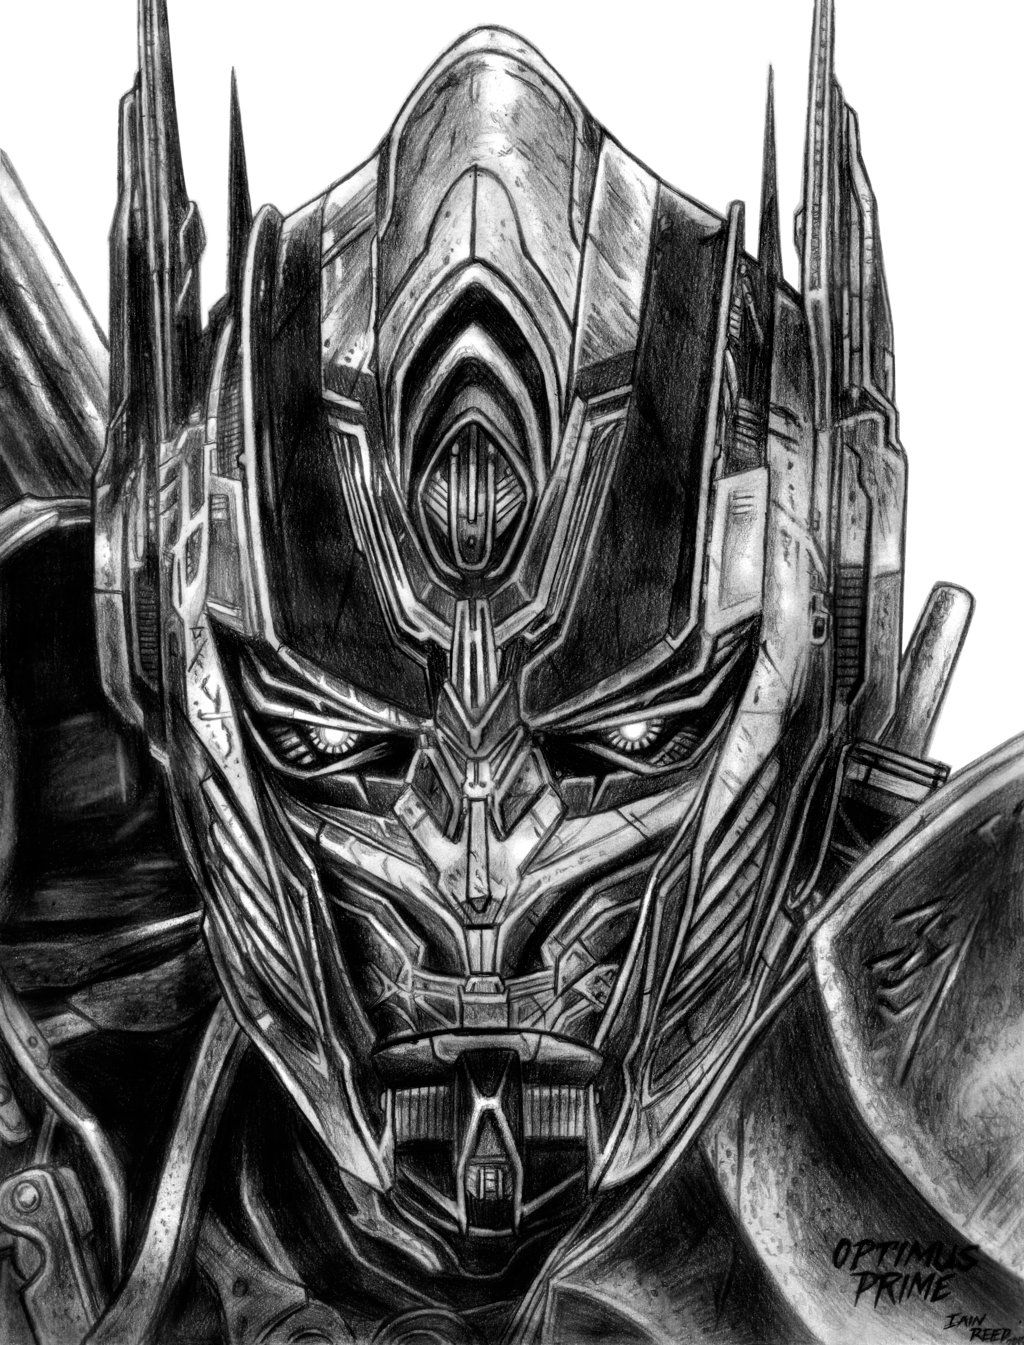 Optimus prime transformers by soulstryder210 filmes transformers e projekte - Transformers tapete ...